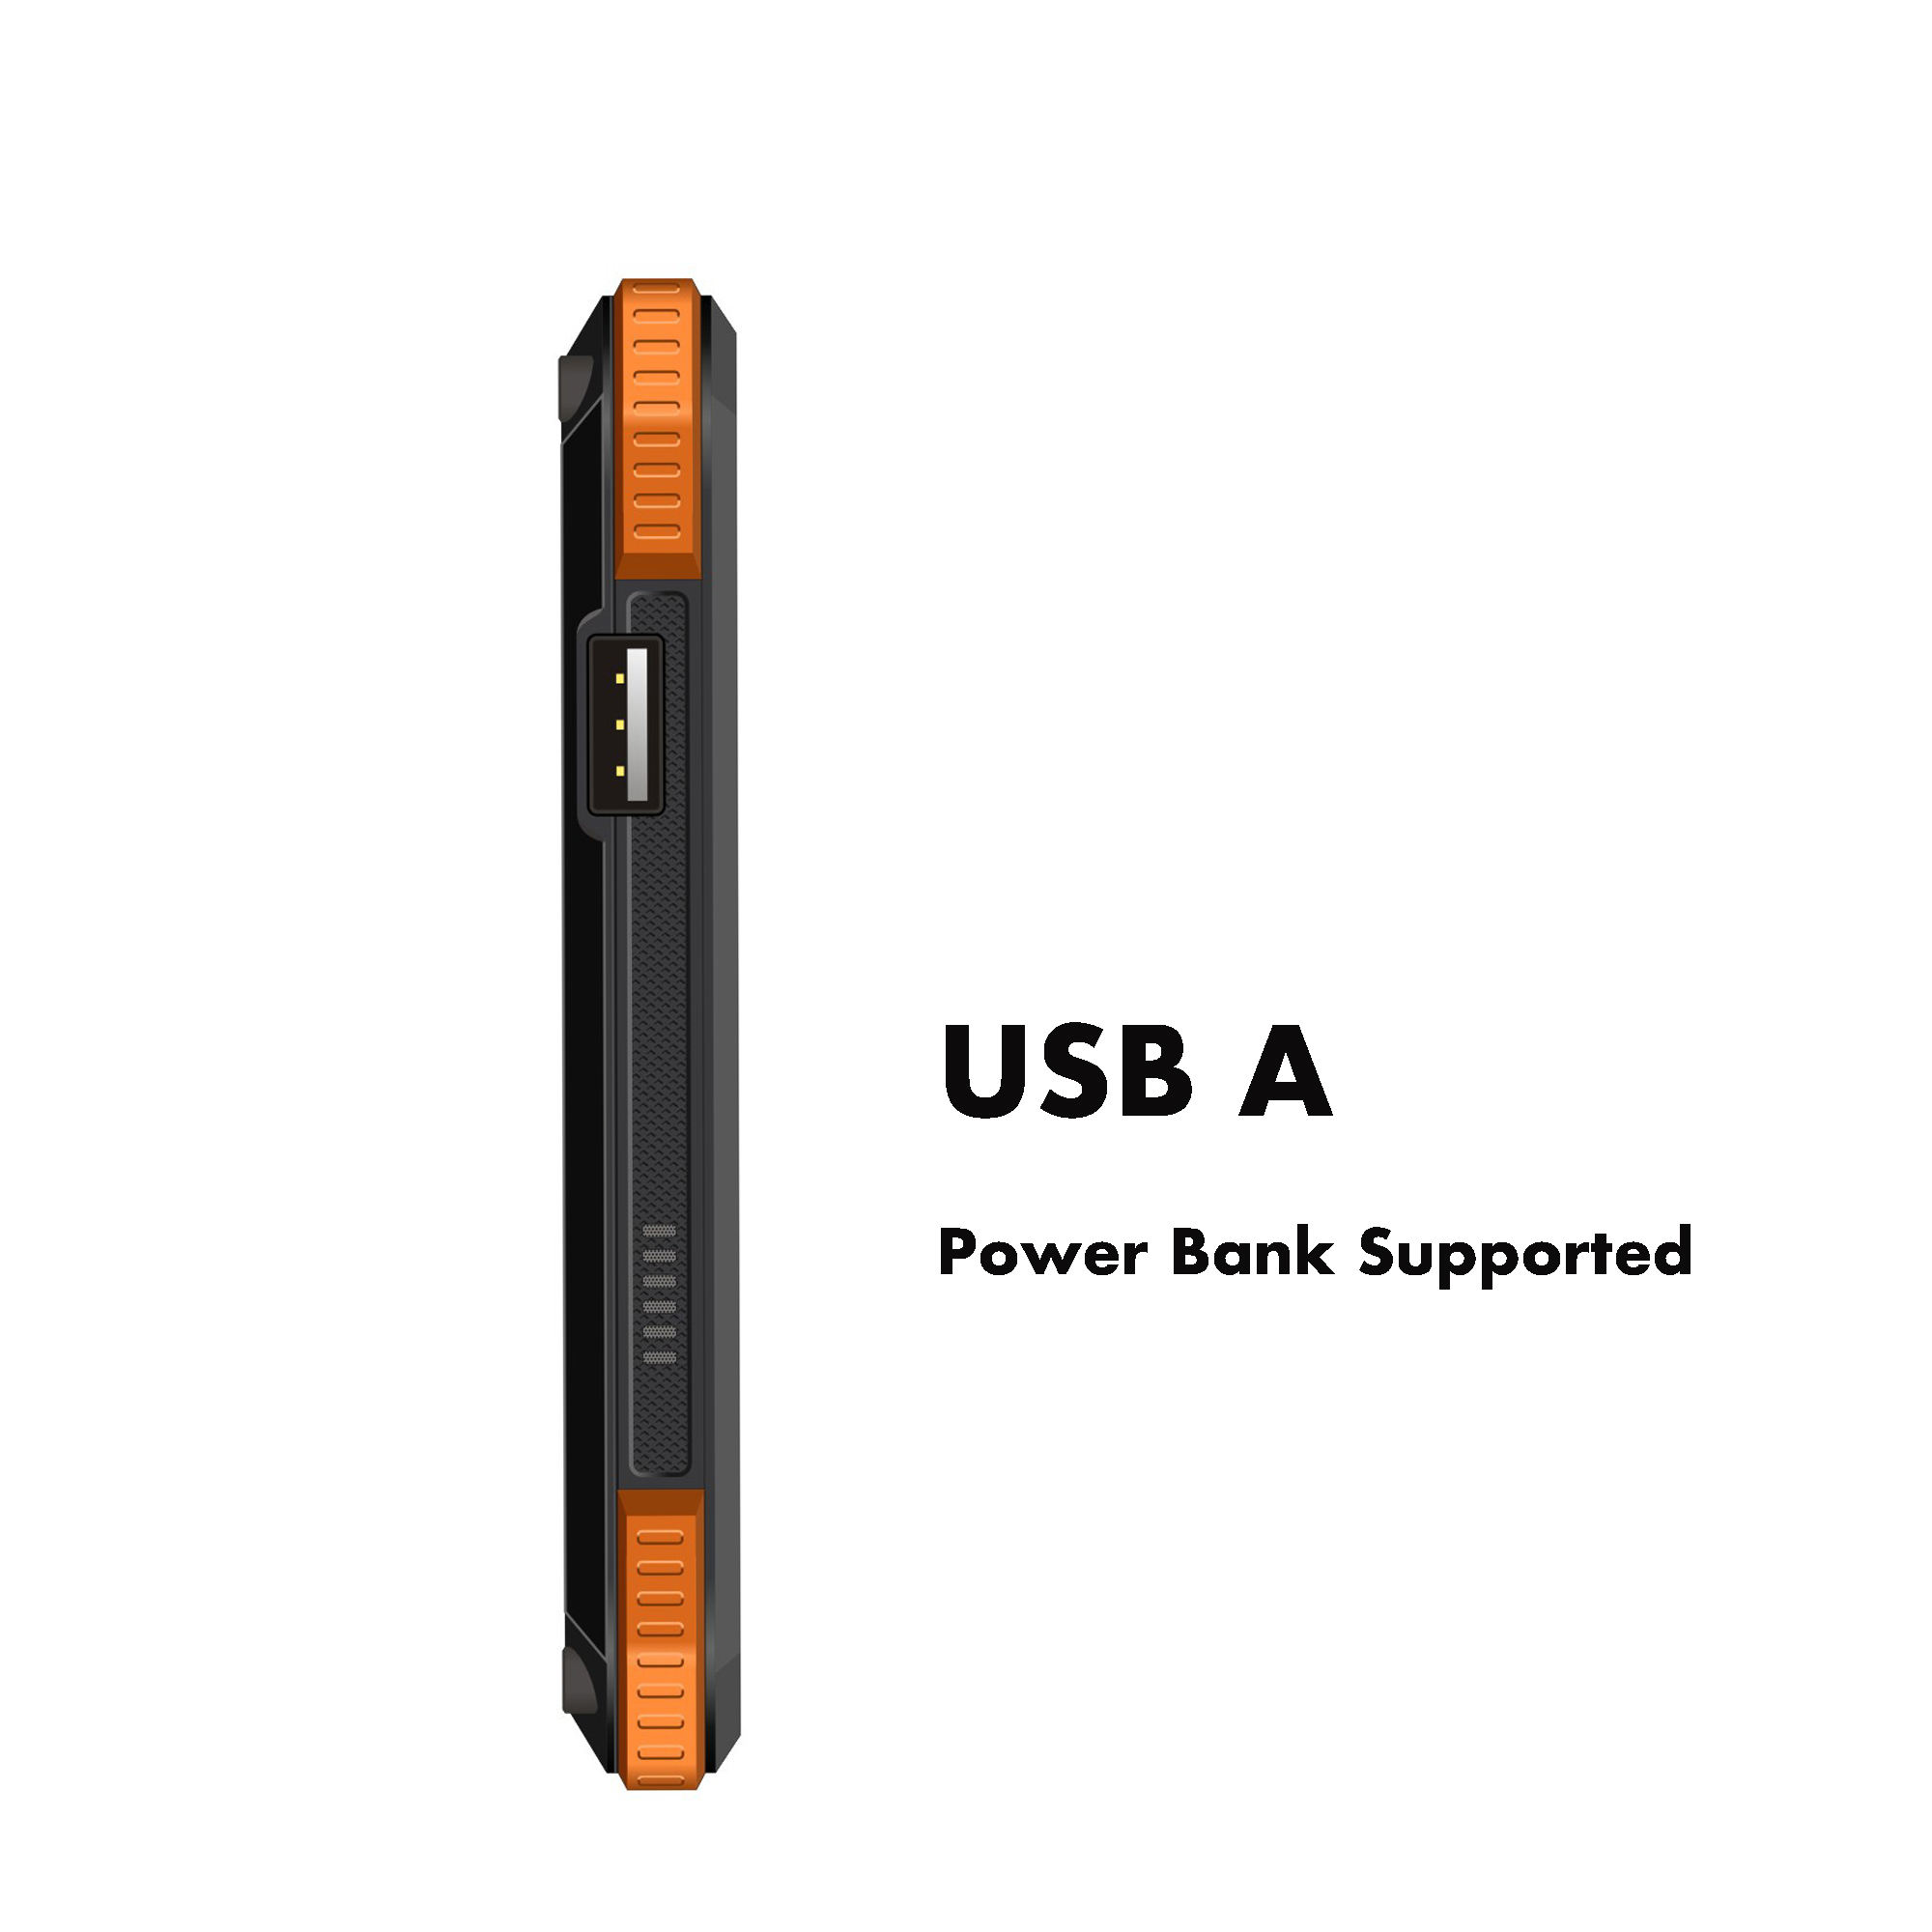 Grande bateria de 6500 mah power bank 7 polegadas robusto como 3g android 8.1 tablet pc 3D impressão